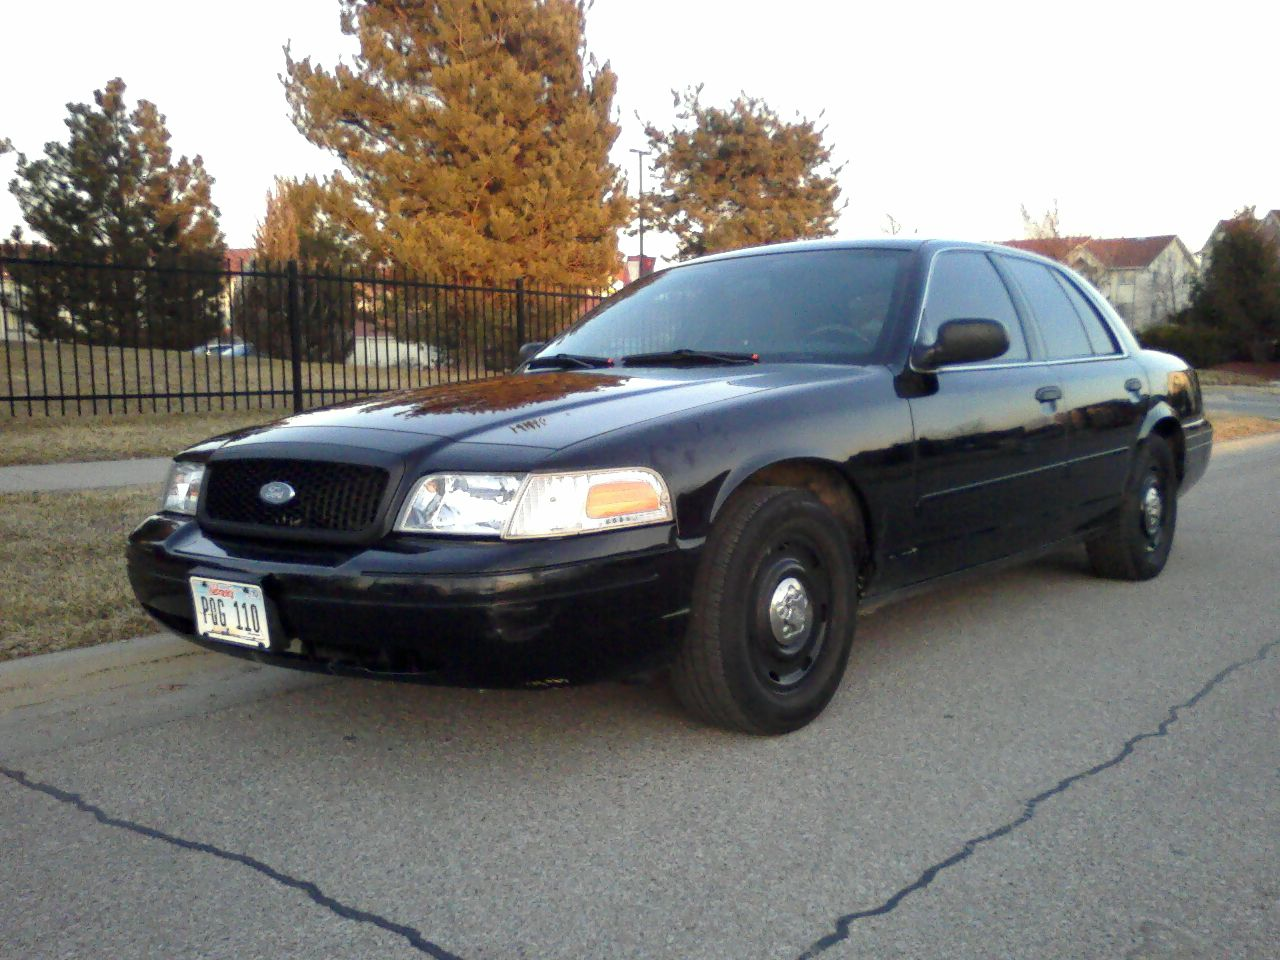 sydspinnin: For Sale: 2003 Crown Victoria Police Interceptor